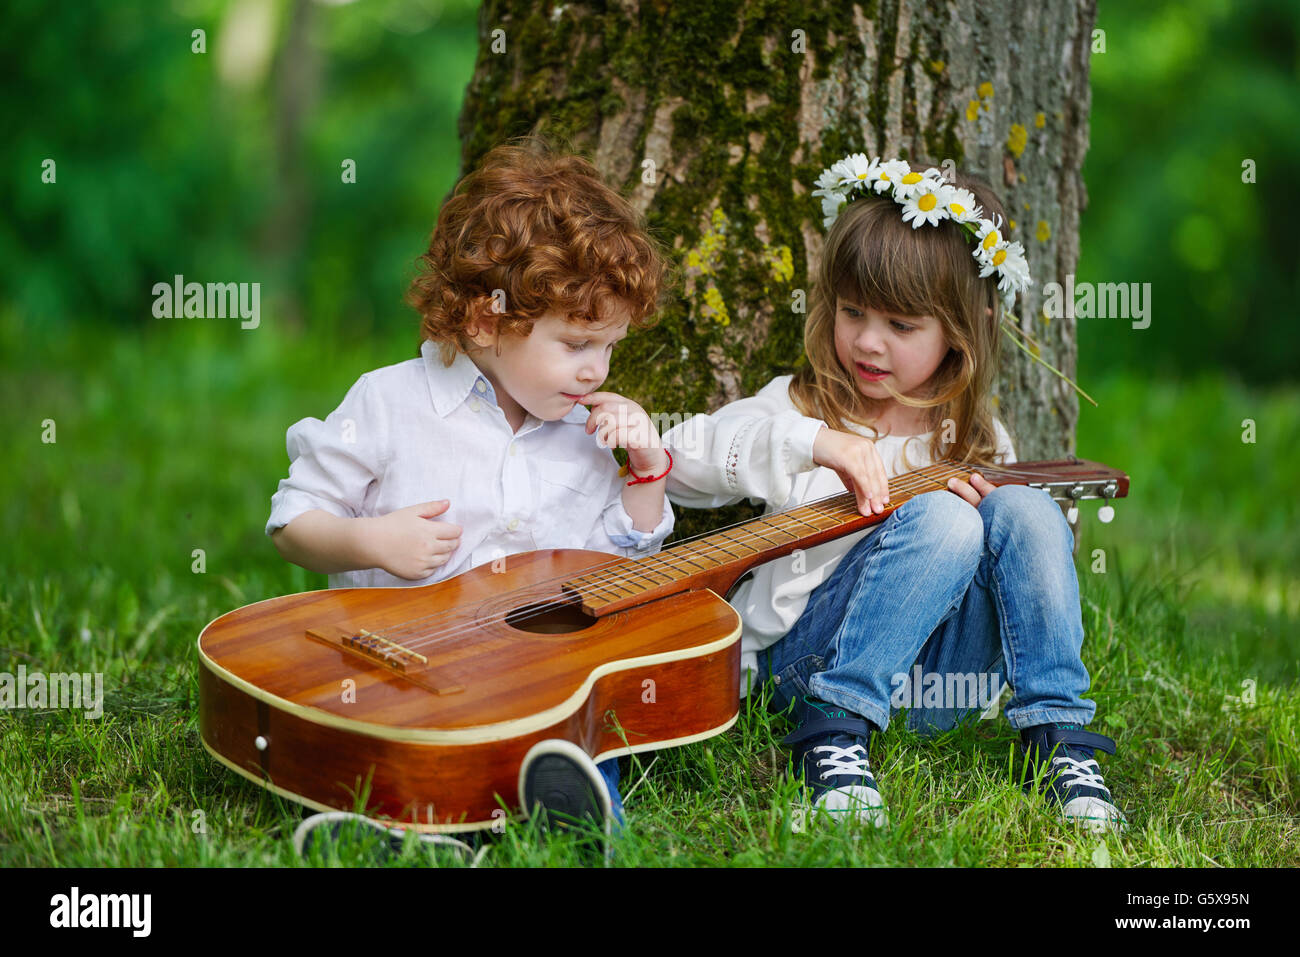 cute children playing guitar stock photo: 106913457 - alamy